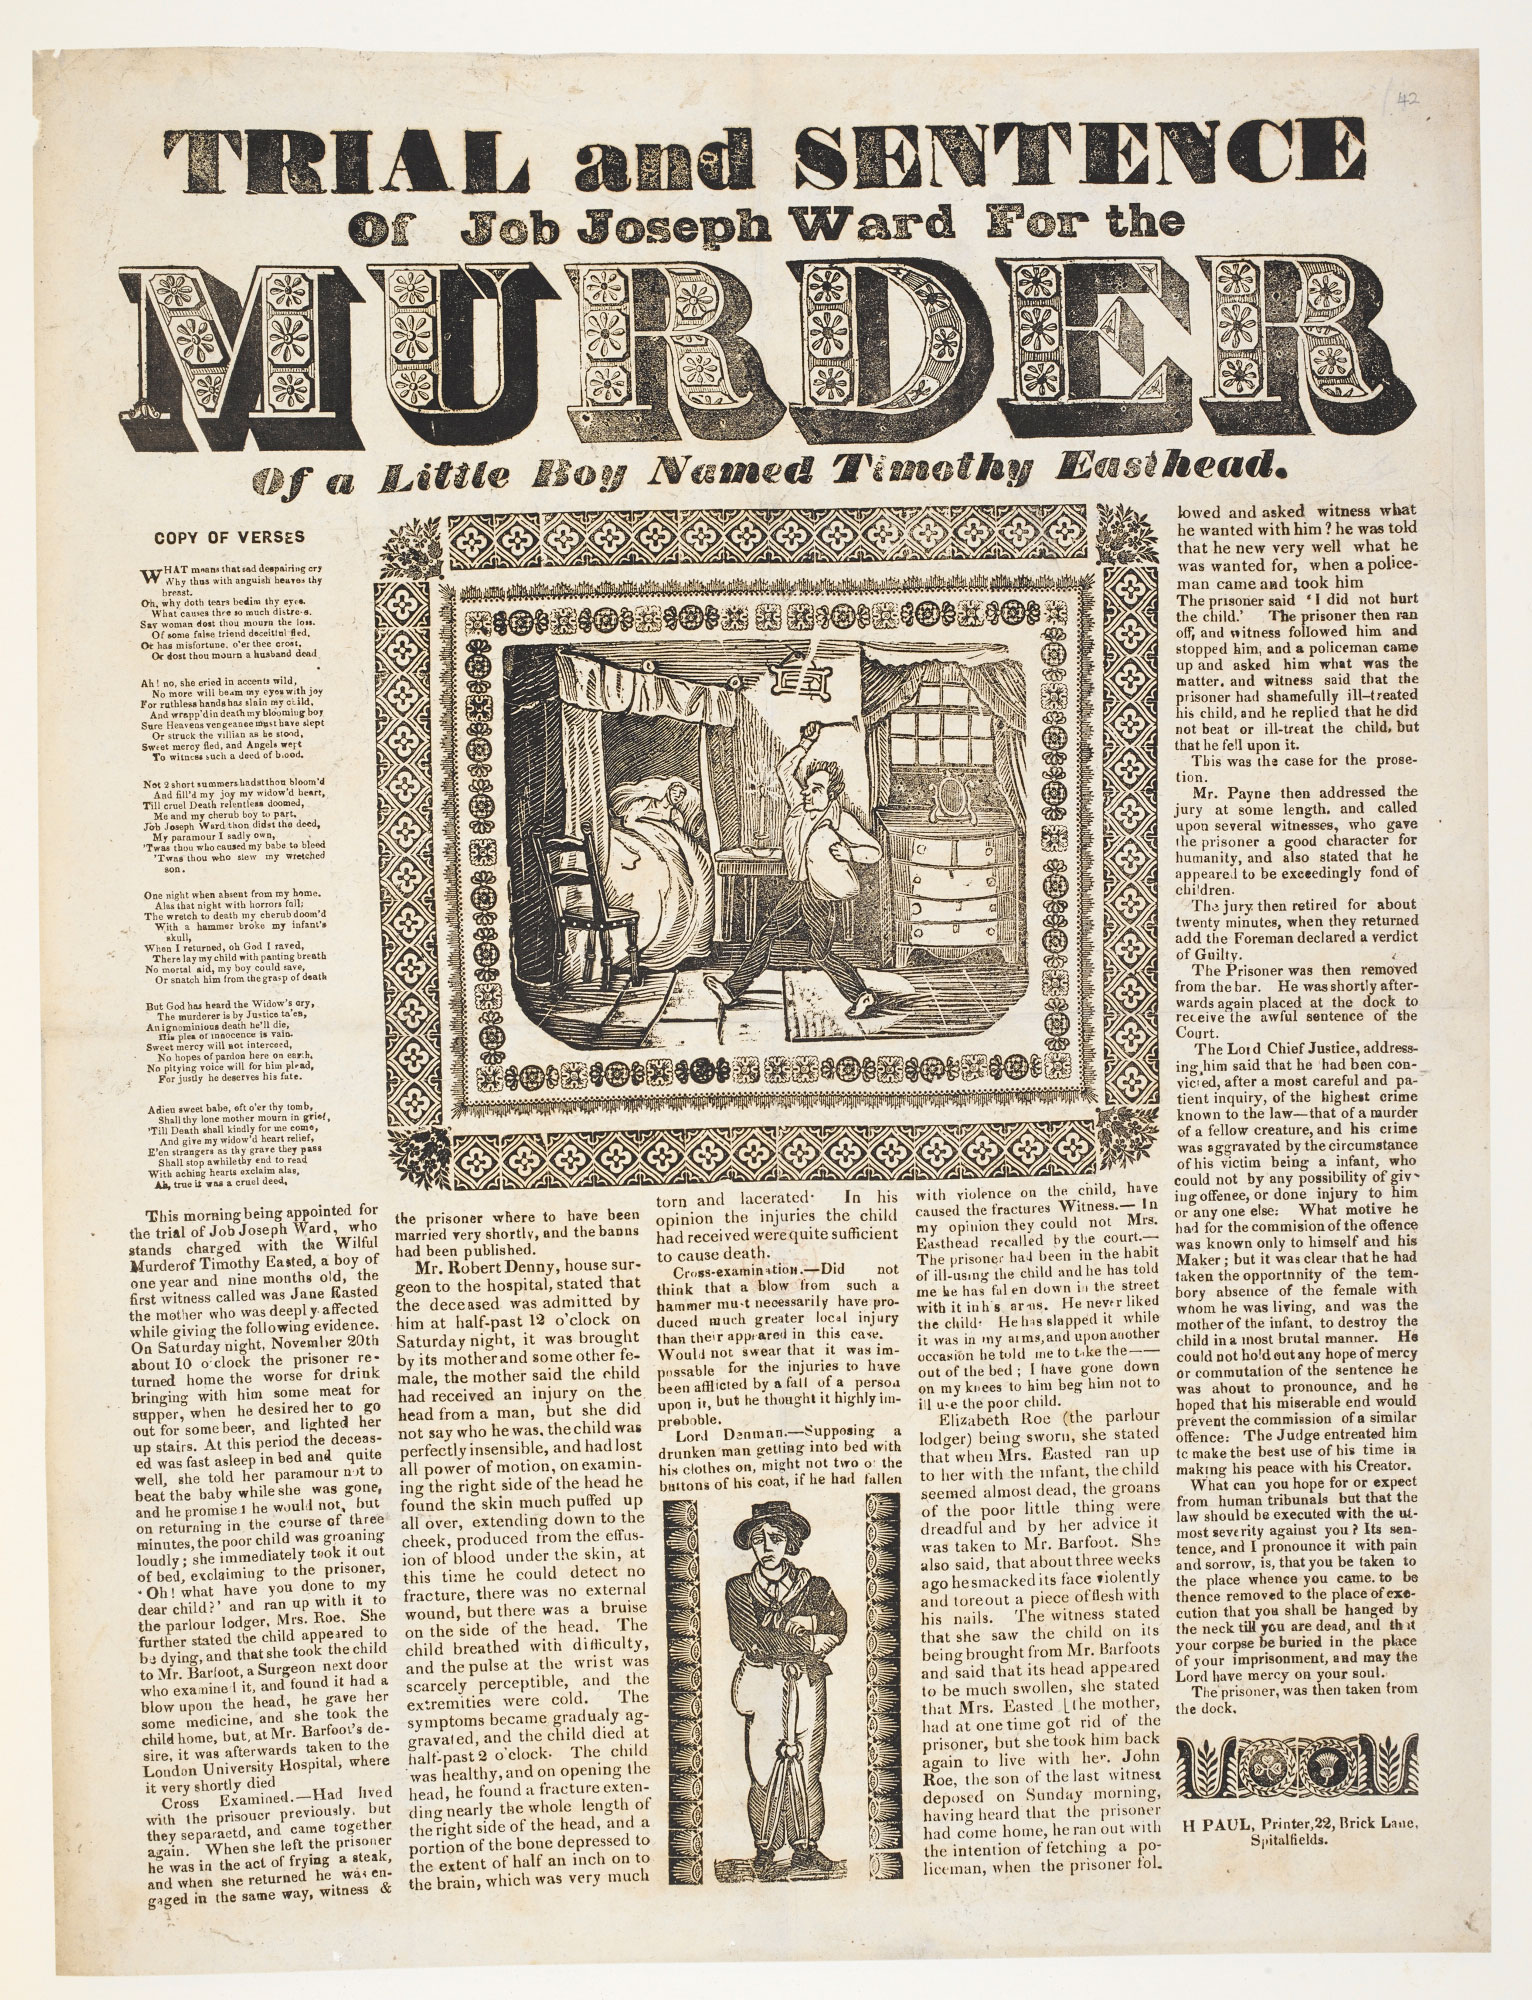 The trial and sentence of Job Joseph Ward, a broadside